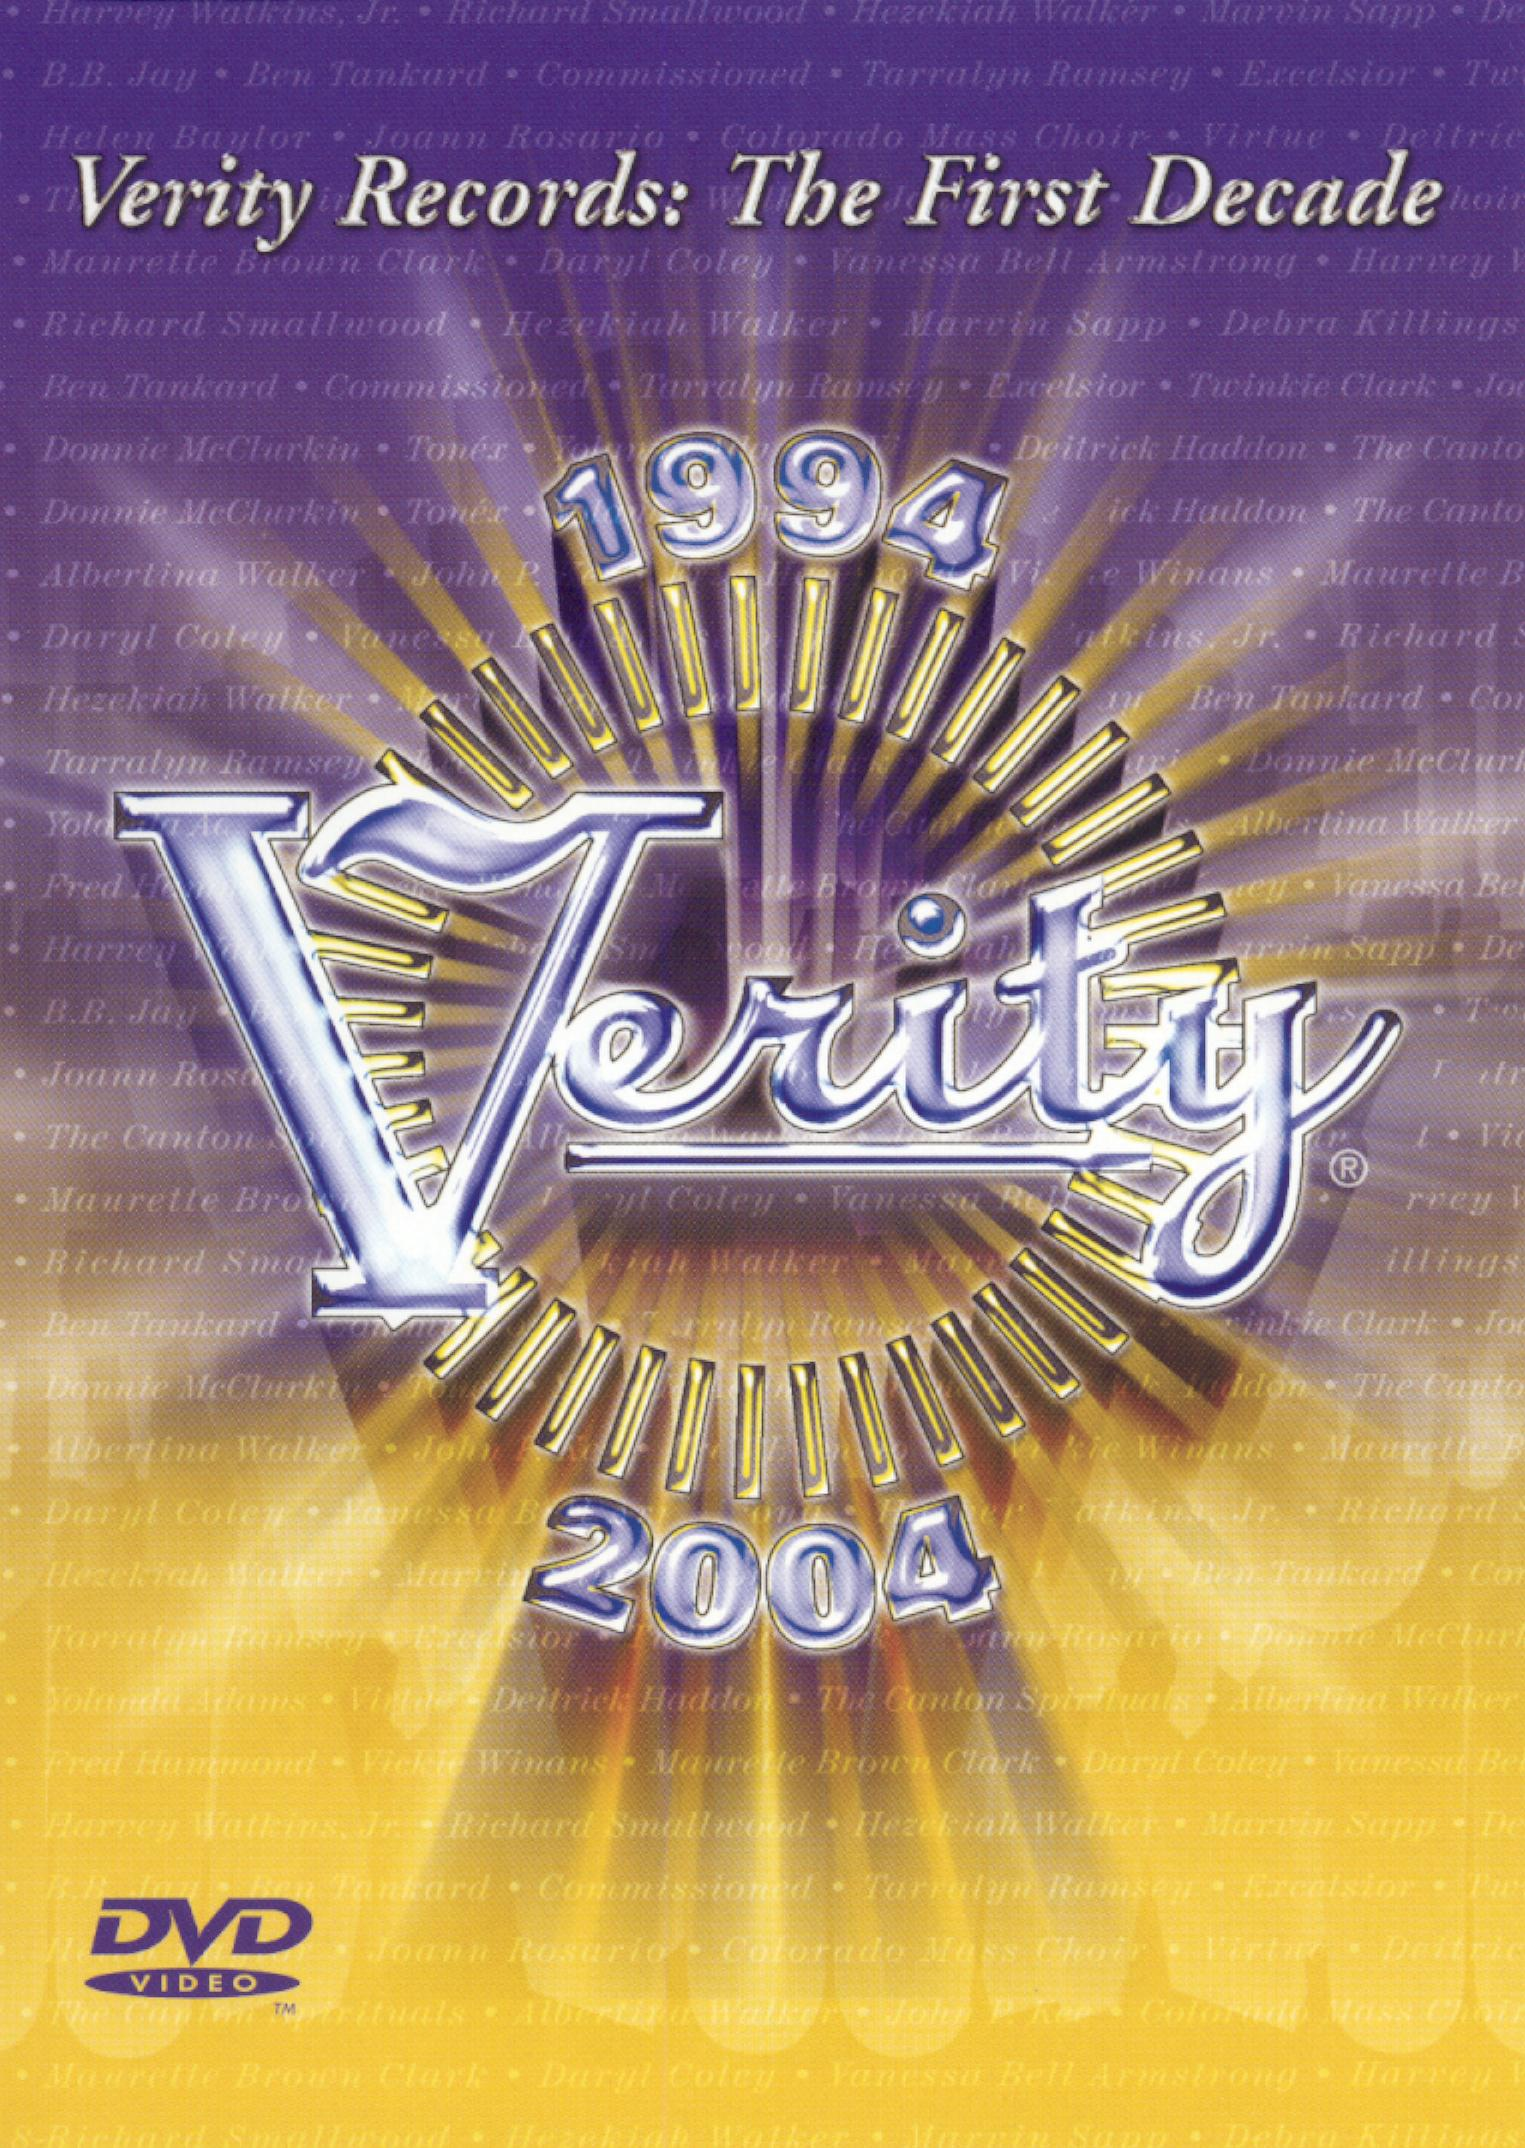 Verity Records: The First Decade